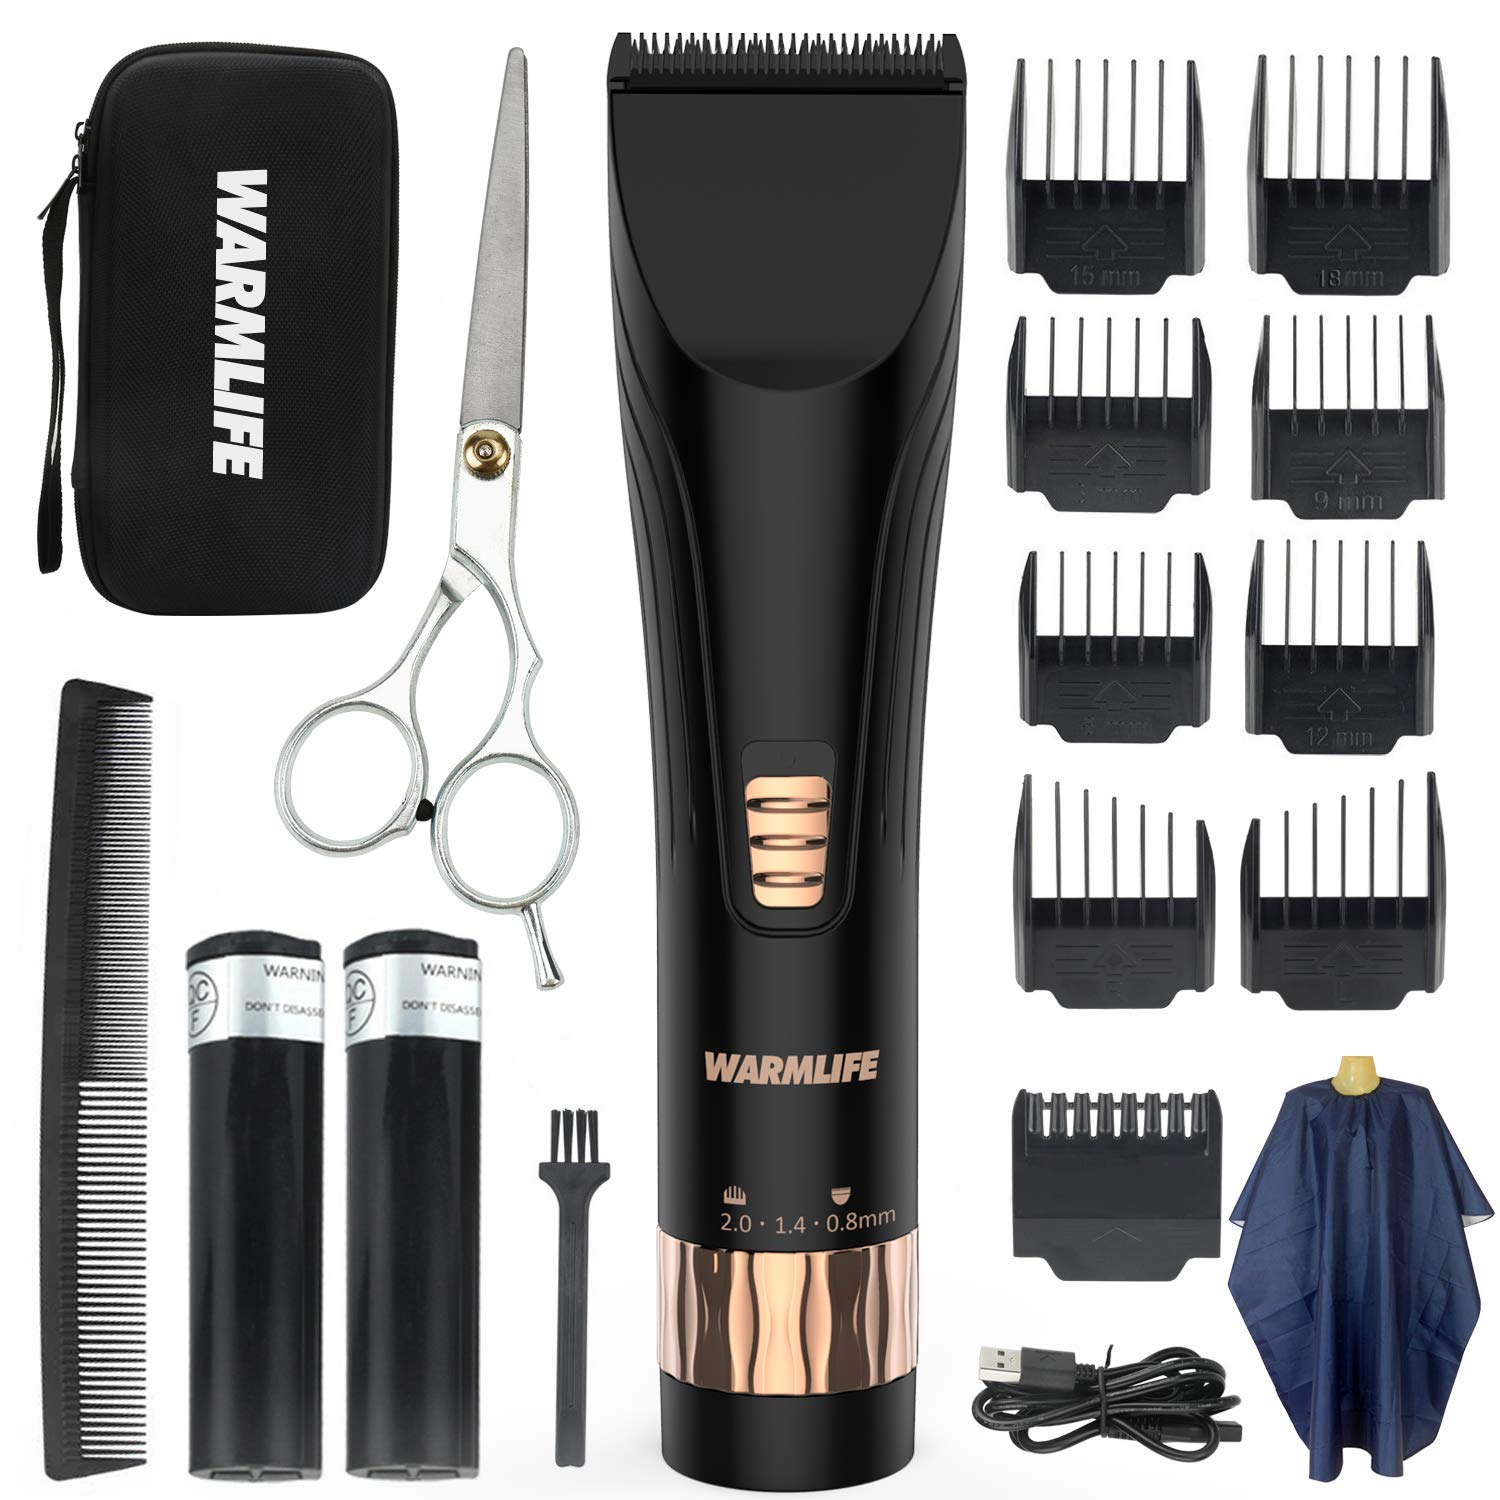 Warmlife Hair Clippers for Men Professional Cordless with Quiet, Smooth, Lightweight, Electric Hair Trimmer for Men Set, Hair Cutting Machine Kits Barber Clippers Recommend (X5-NEW)